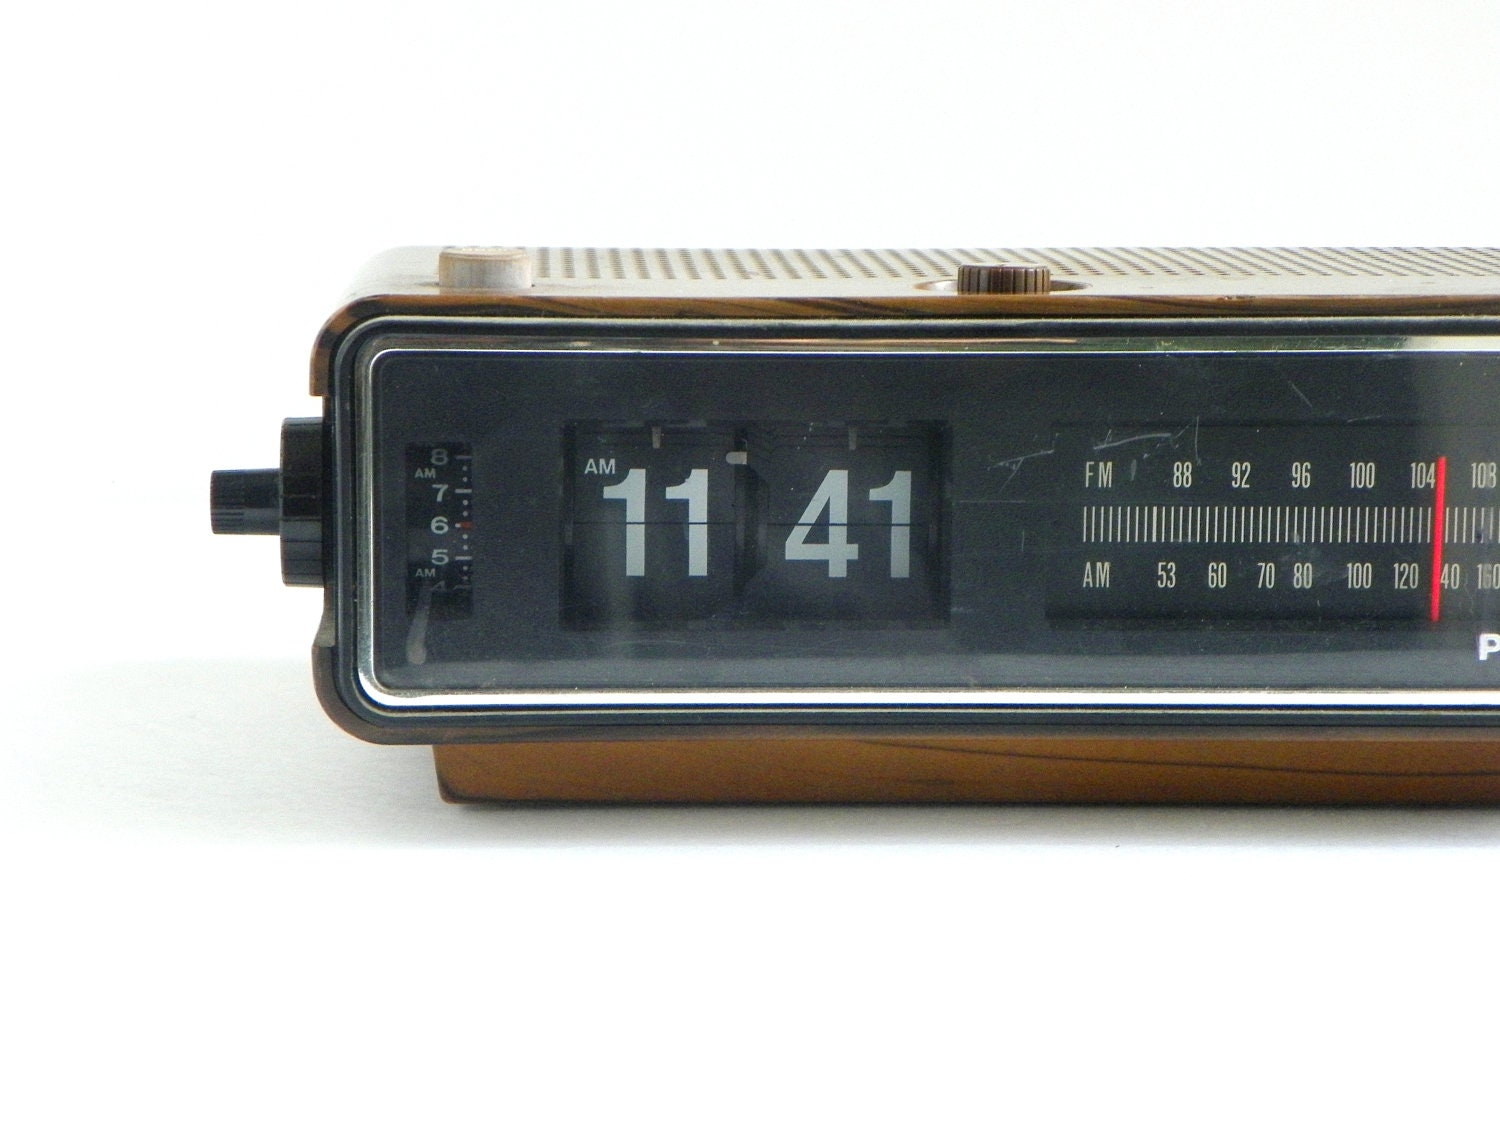 Panasonic Flip Clock With Radio Alarm